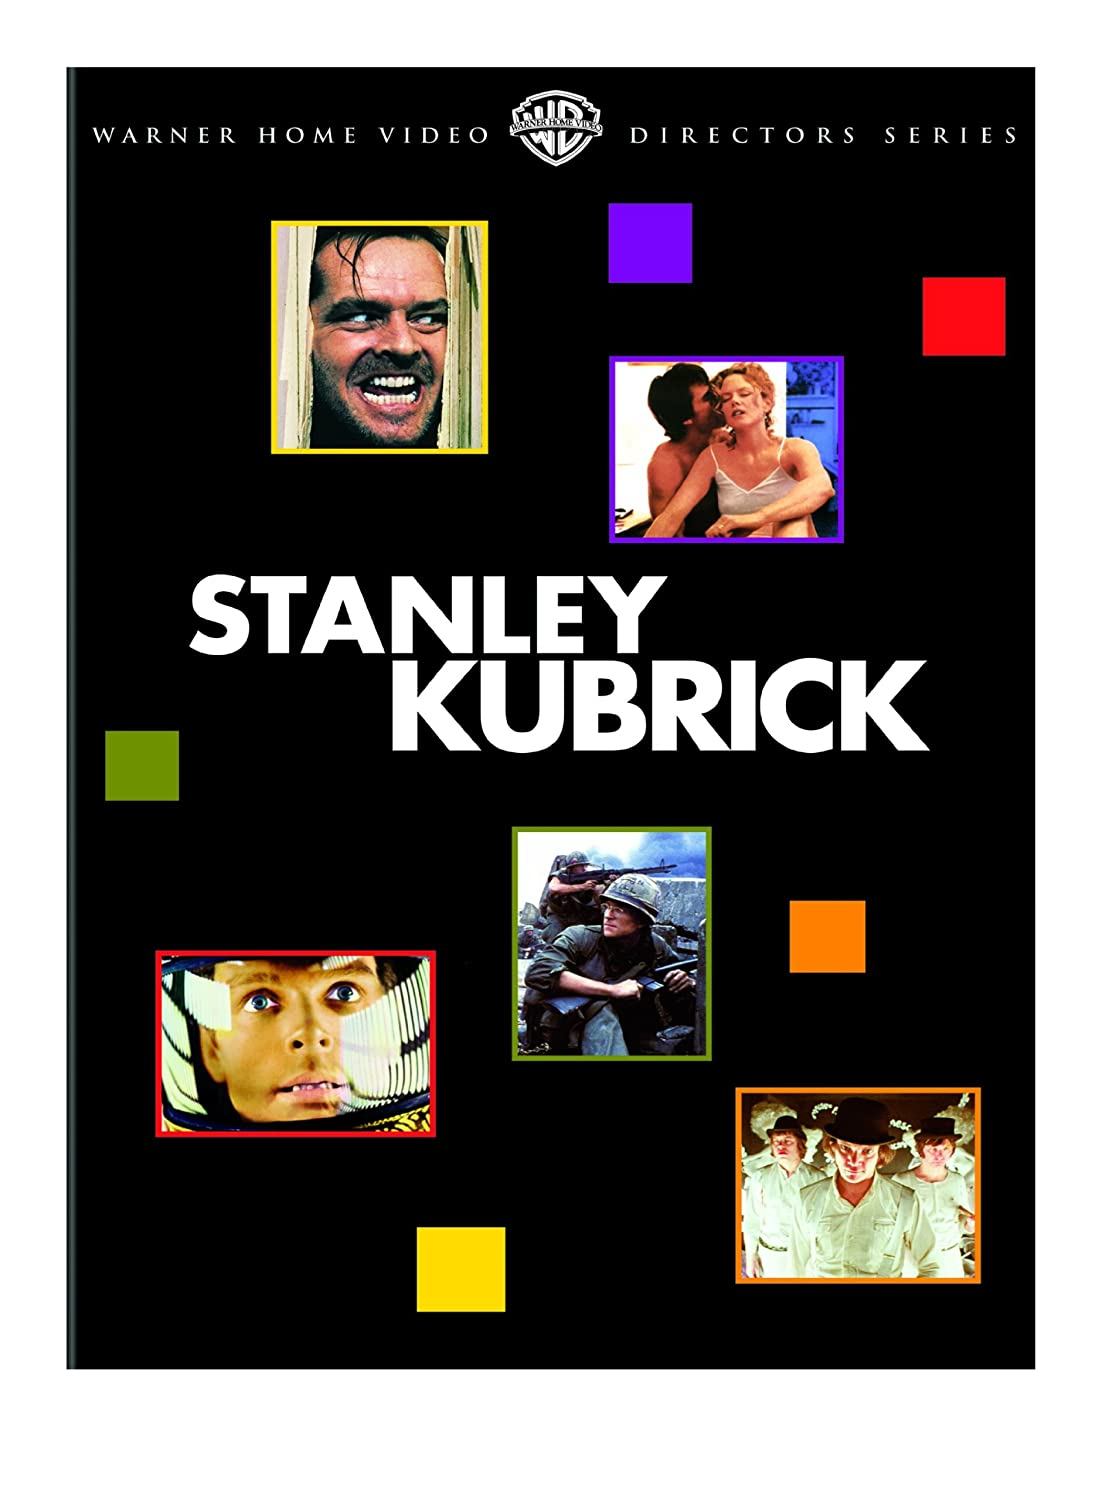 7 Stanley Kubrick films that every movie fan should see